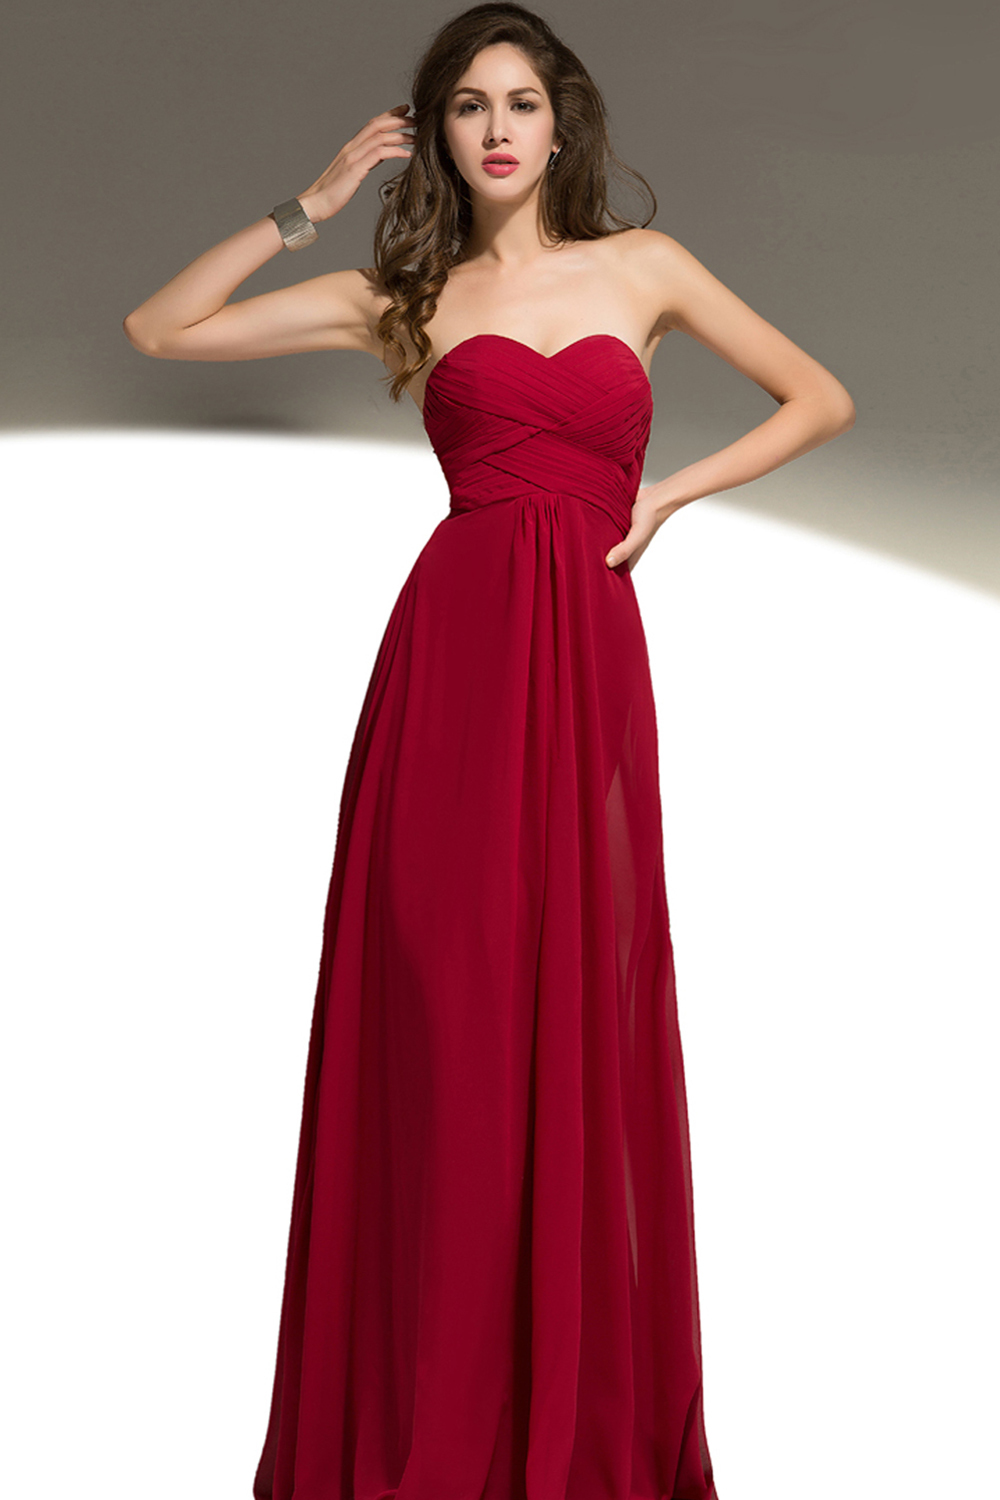 A-Line/Princess Sweetheart Neckline Floor Length Chiffon Bridesmaid Dresses with Ruffle